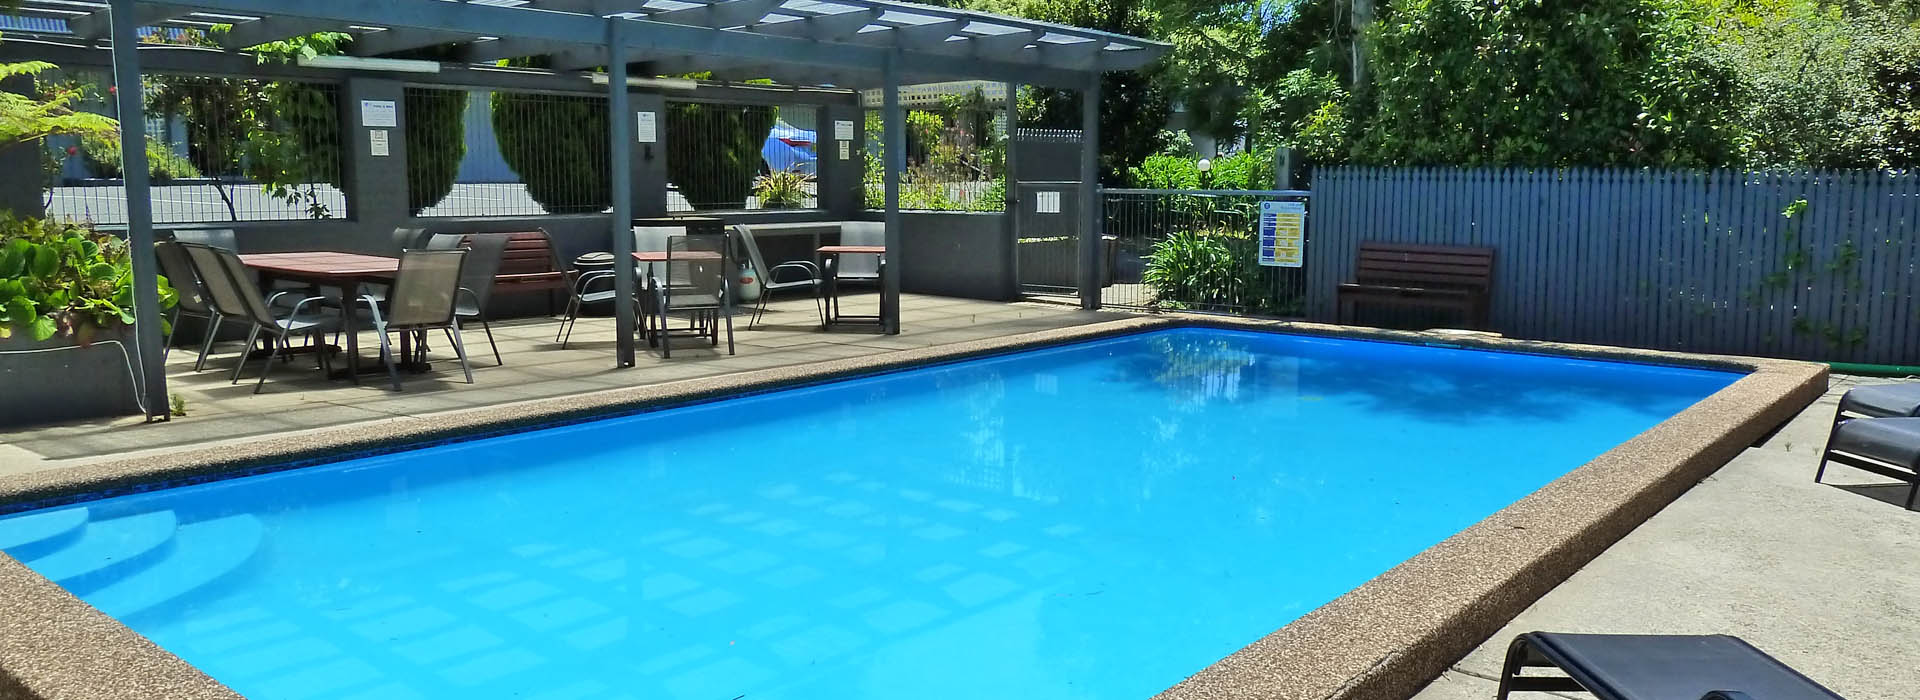 Relax and enjoy our popular salt water swimming pool and BBQ area.